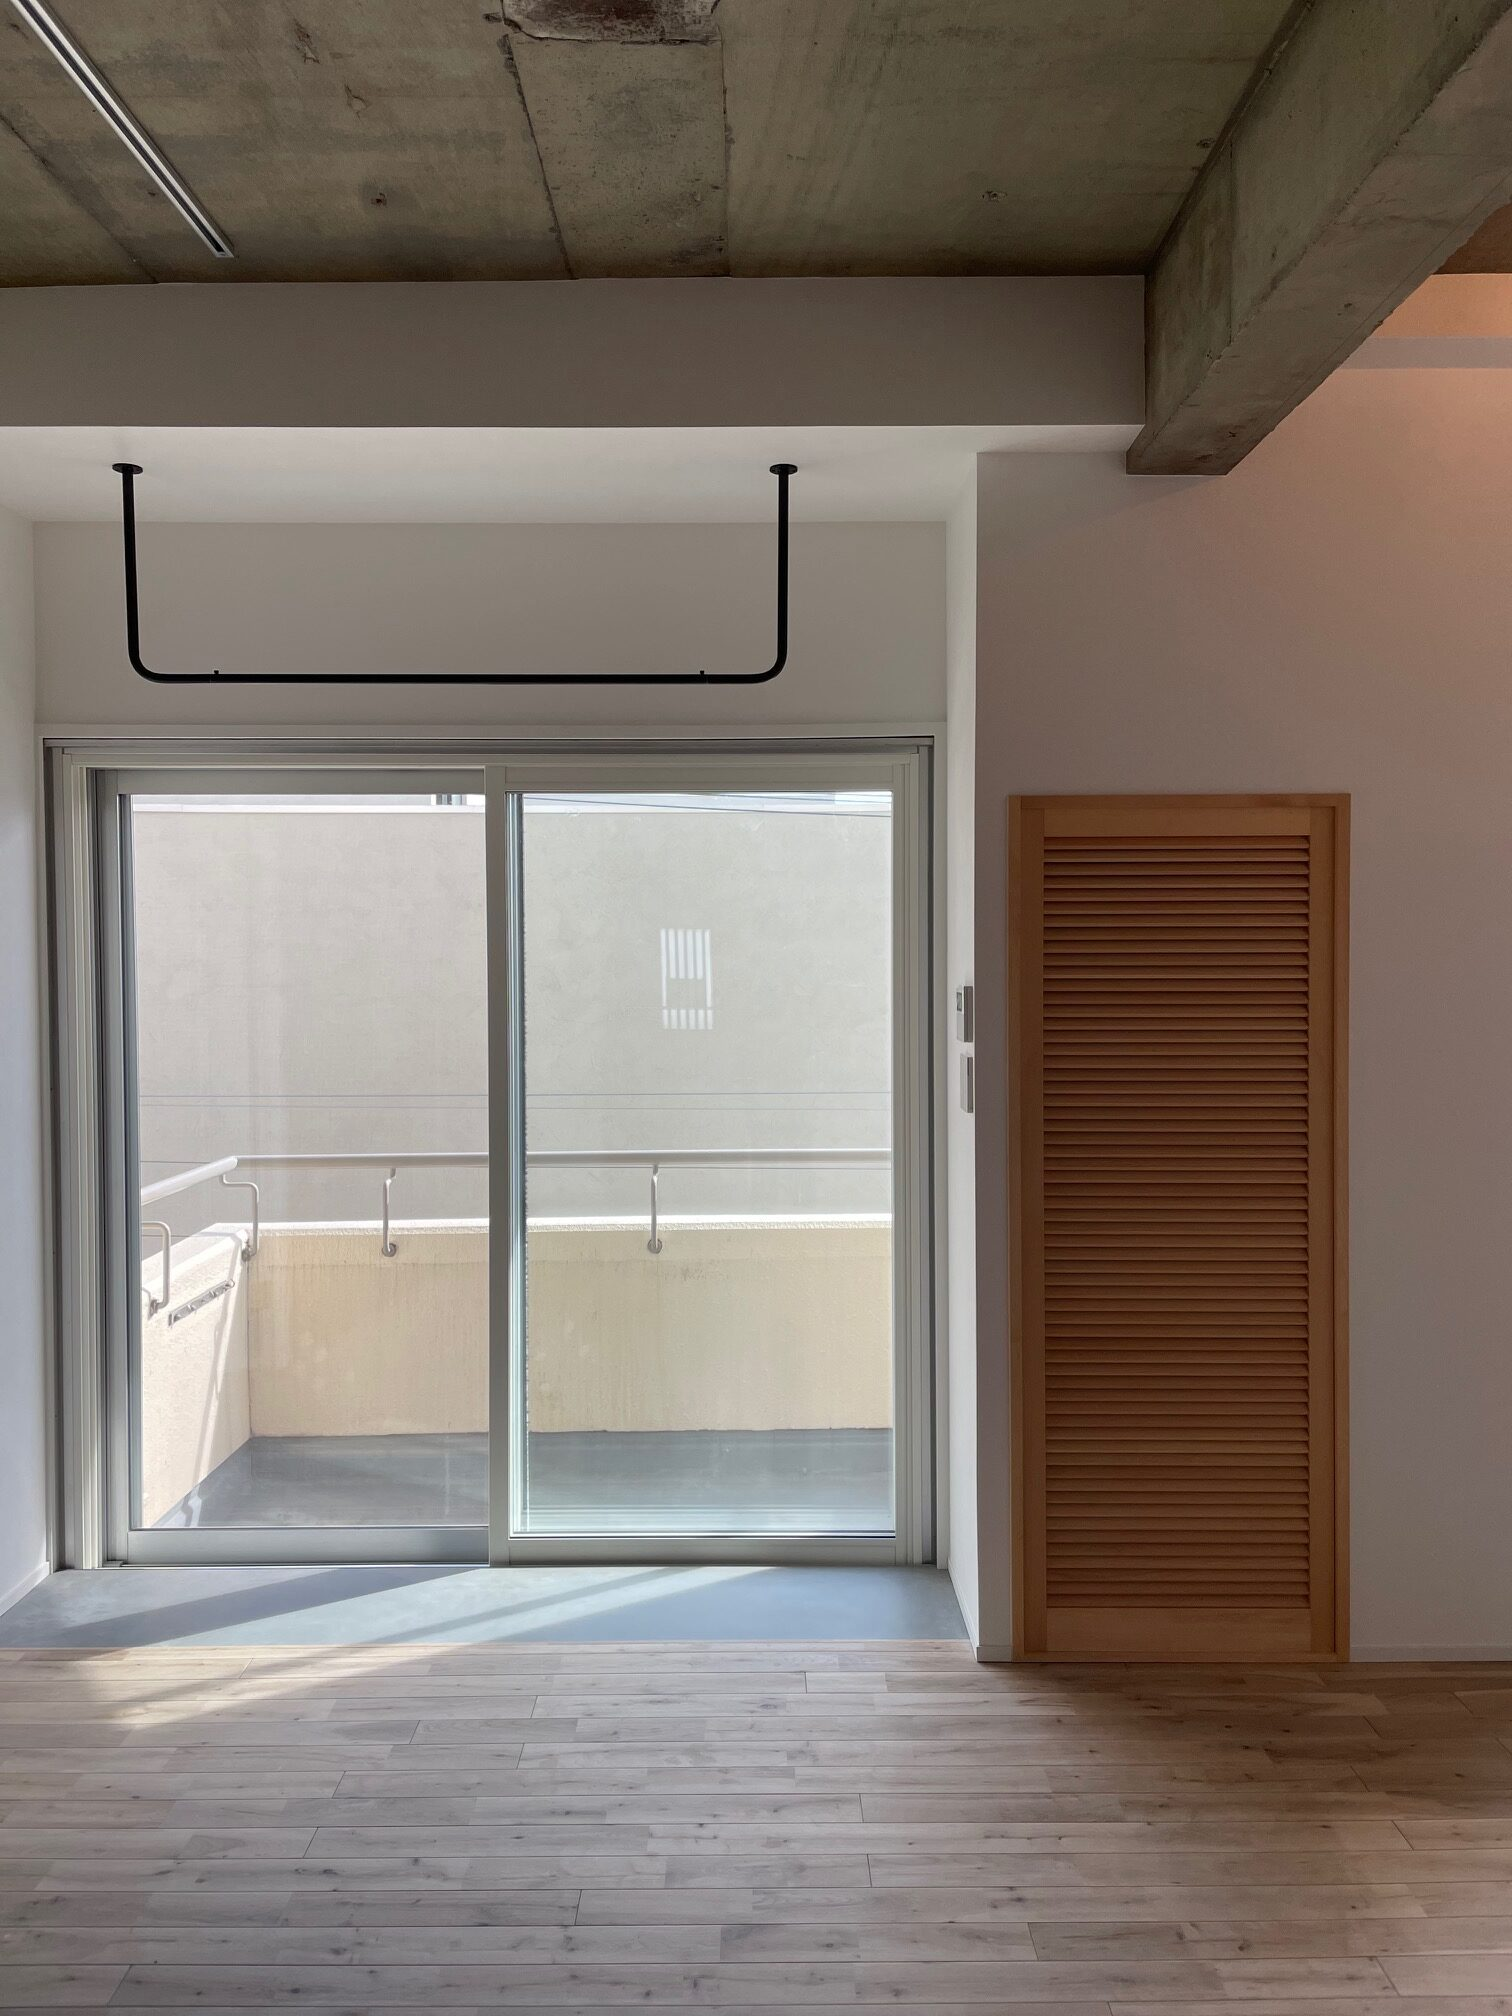 【this one】マンションのスケルトンリノベーション施工中の様子